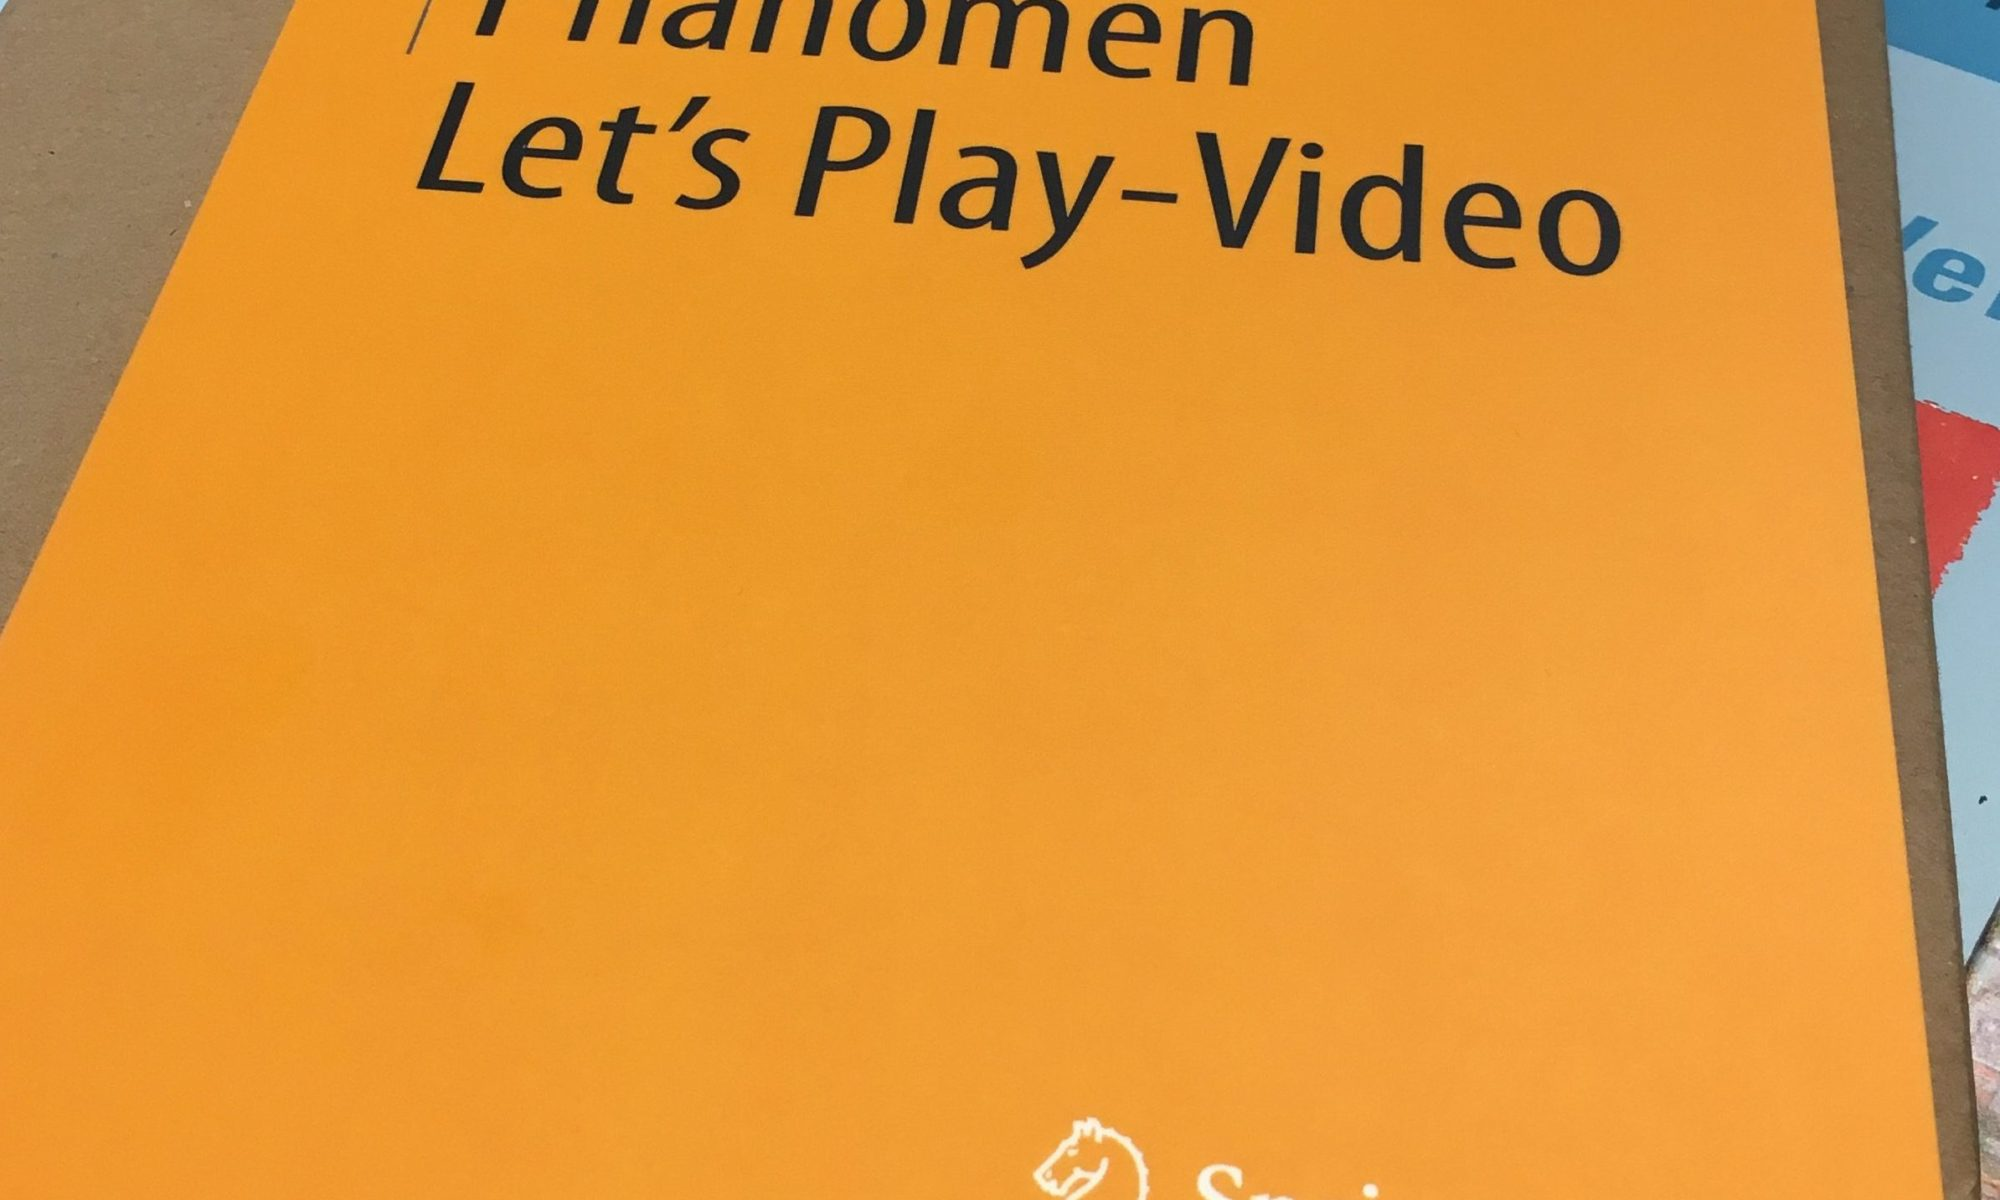 Phänomen Let's Play-Video